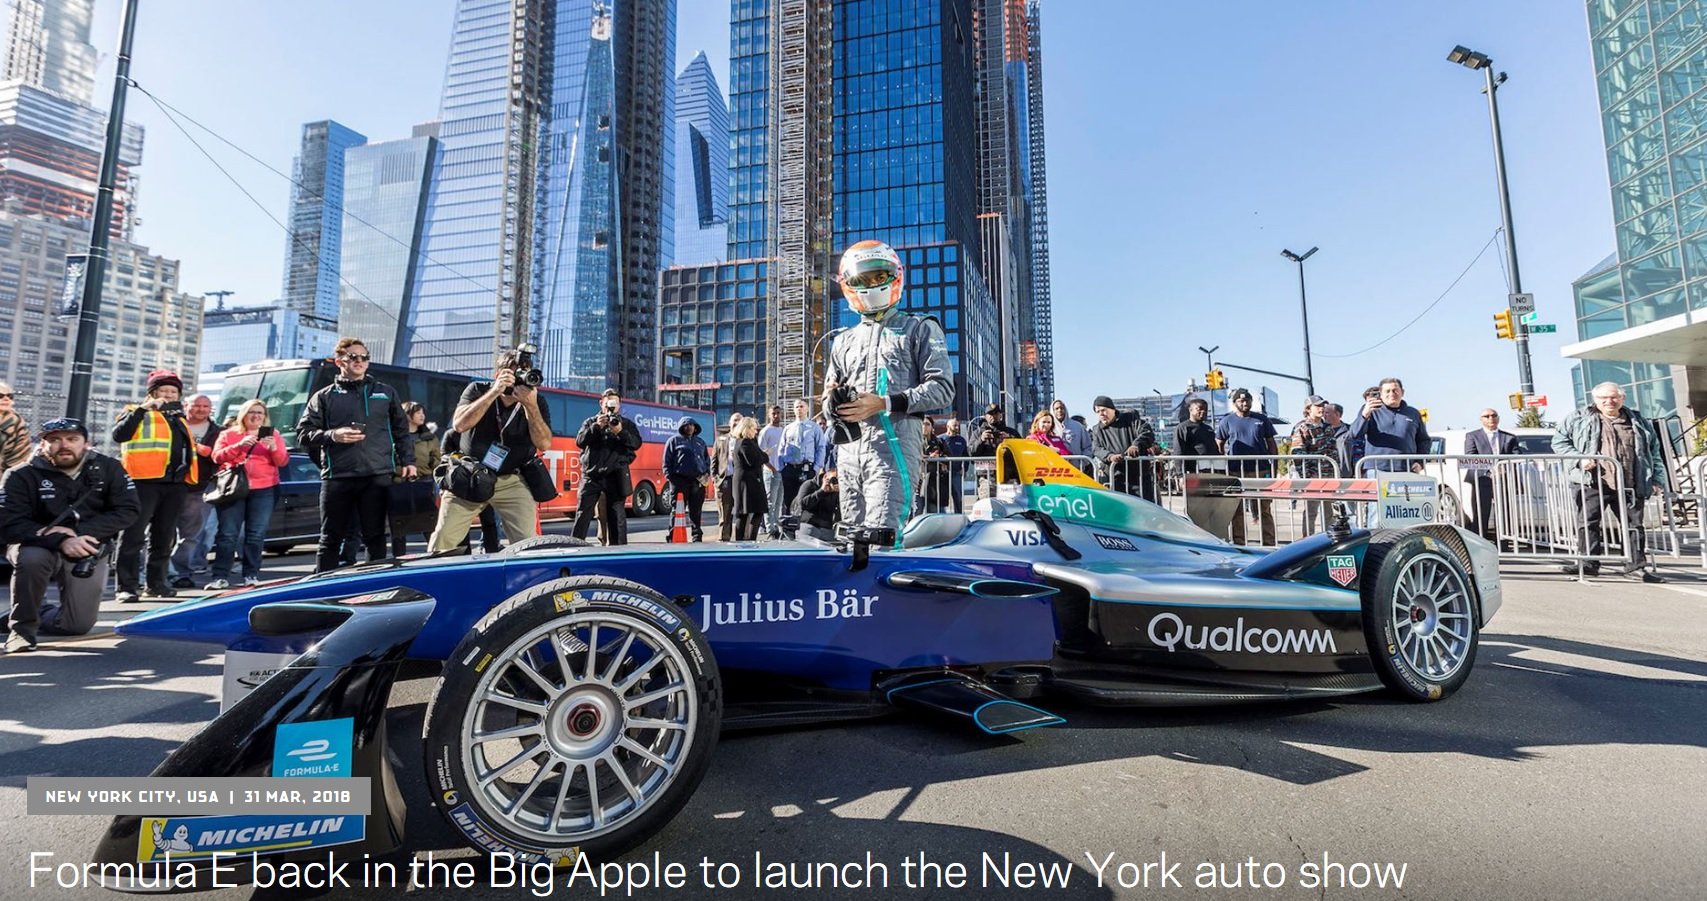 News atx formula e was back in manhattan to open new york international auto show nyias it was the first time the official championship car will ran on the roads fandeluxe Images